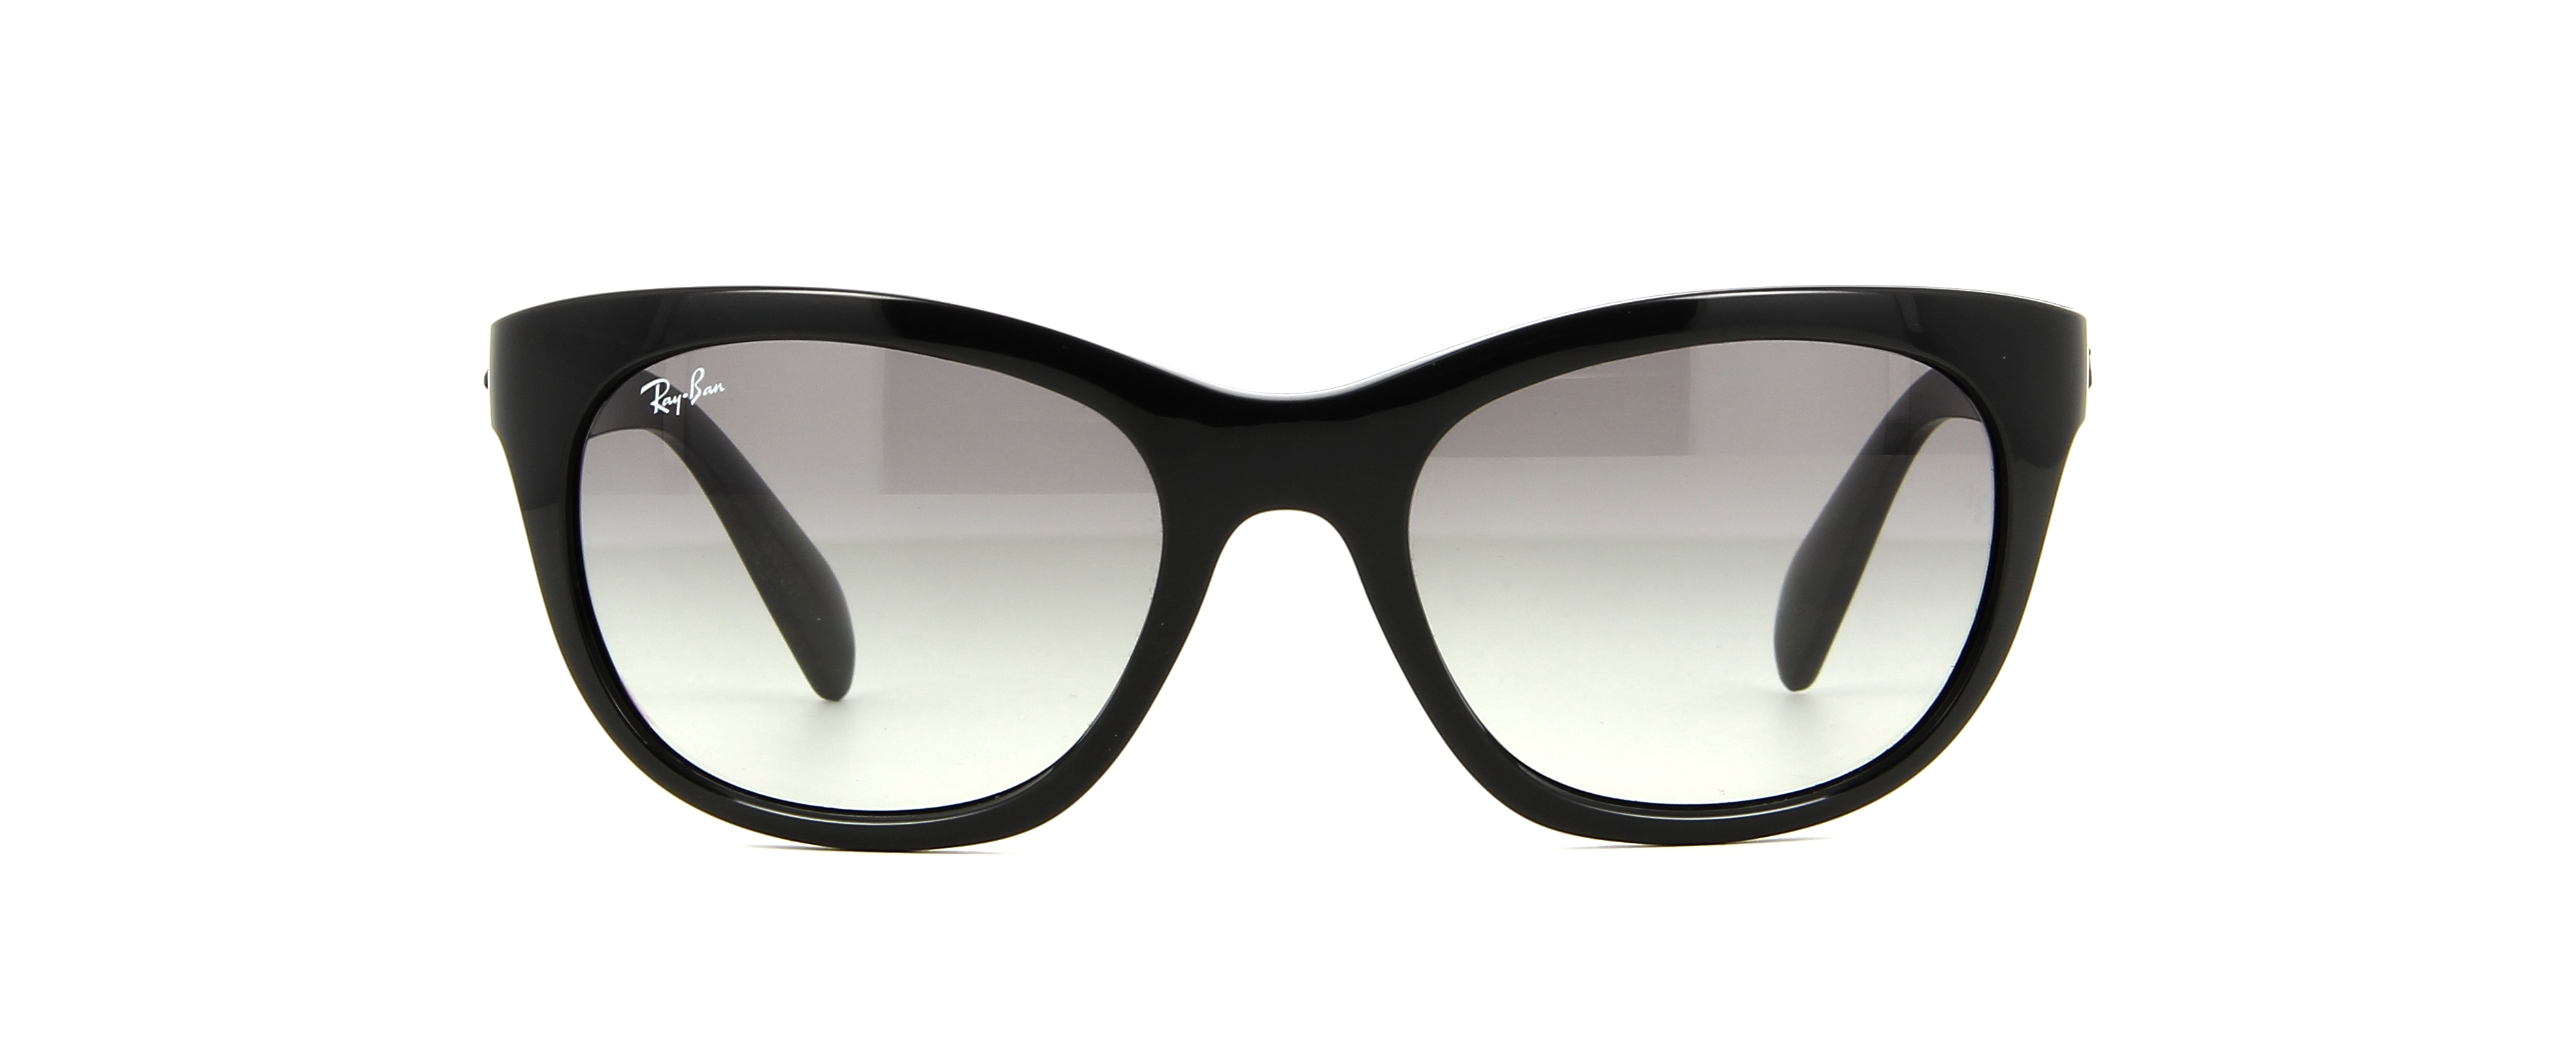 87c9213d599 Ray Ban Rb 4216